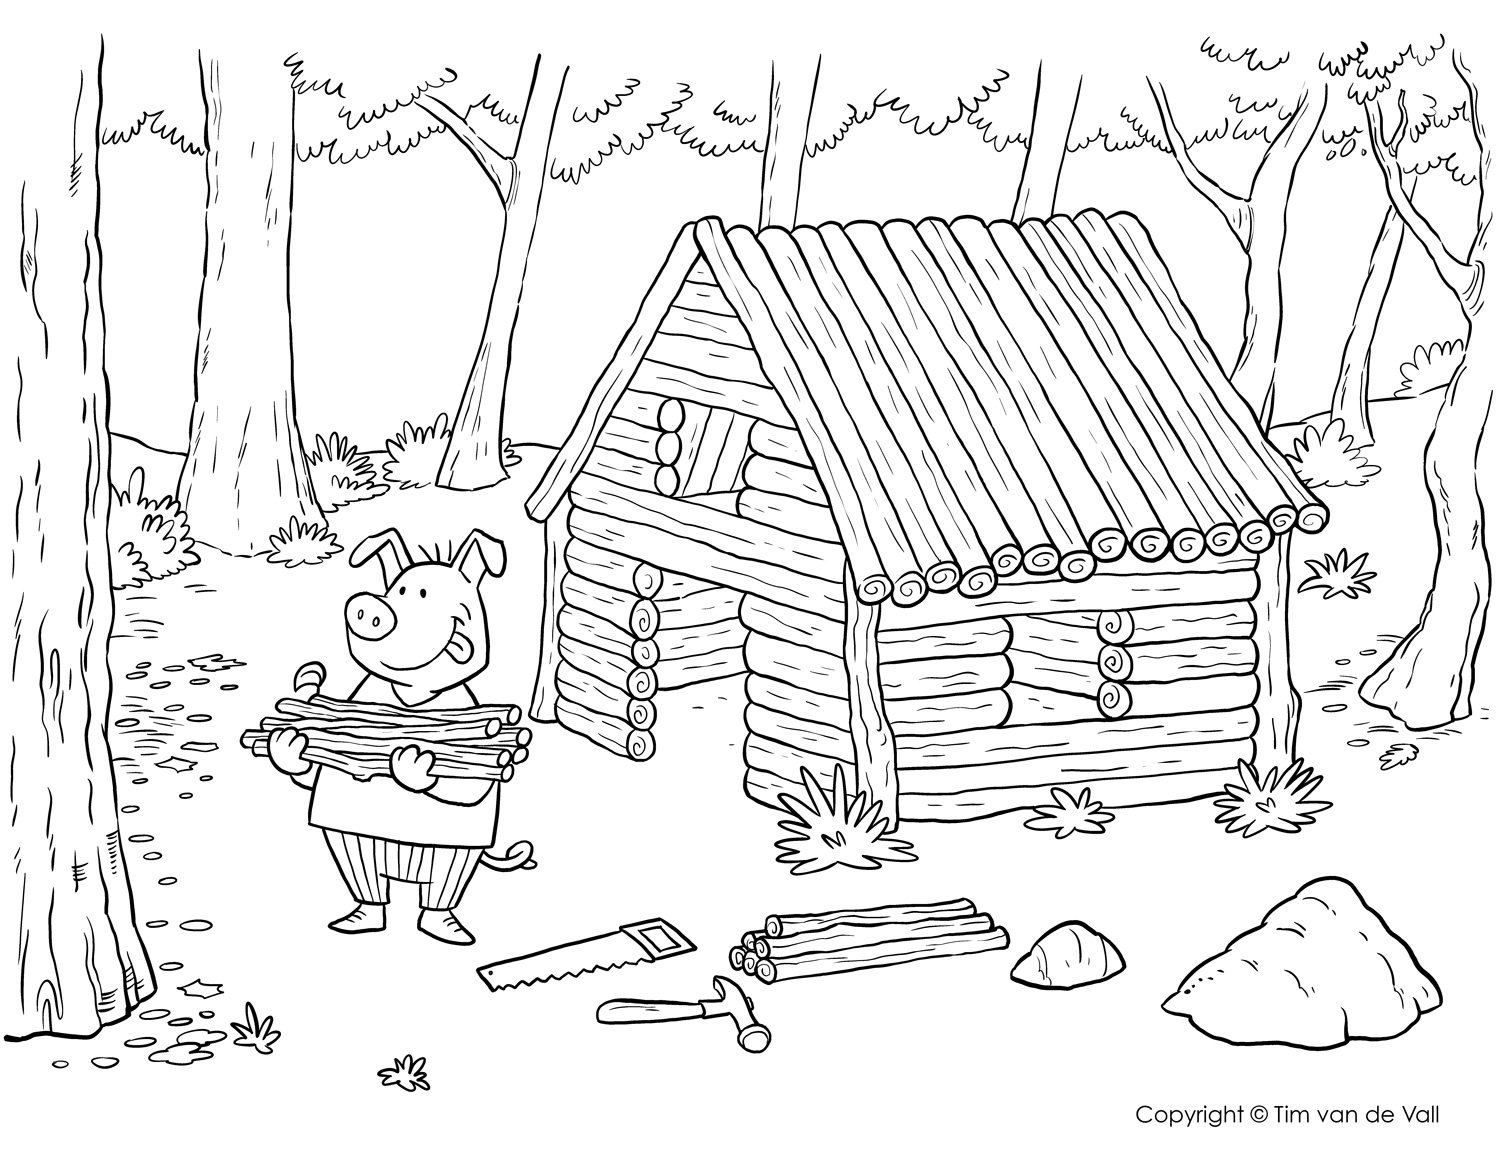 Three Little Pigs Coloring Pages â The Three Little Pigs